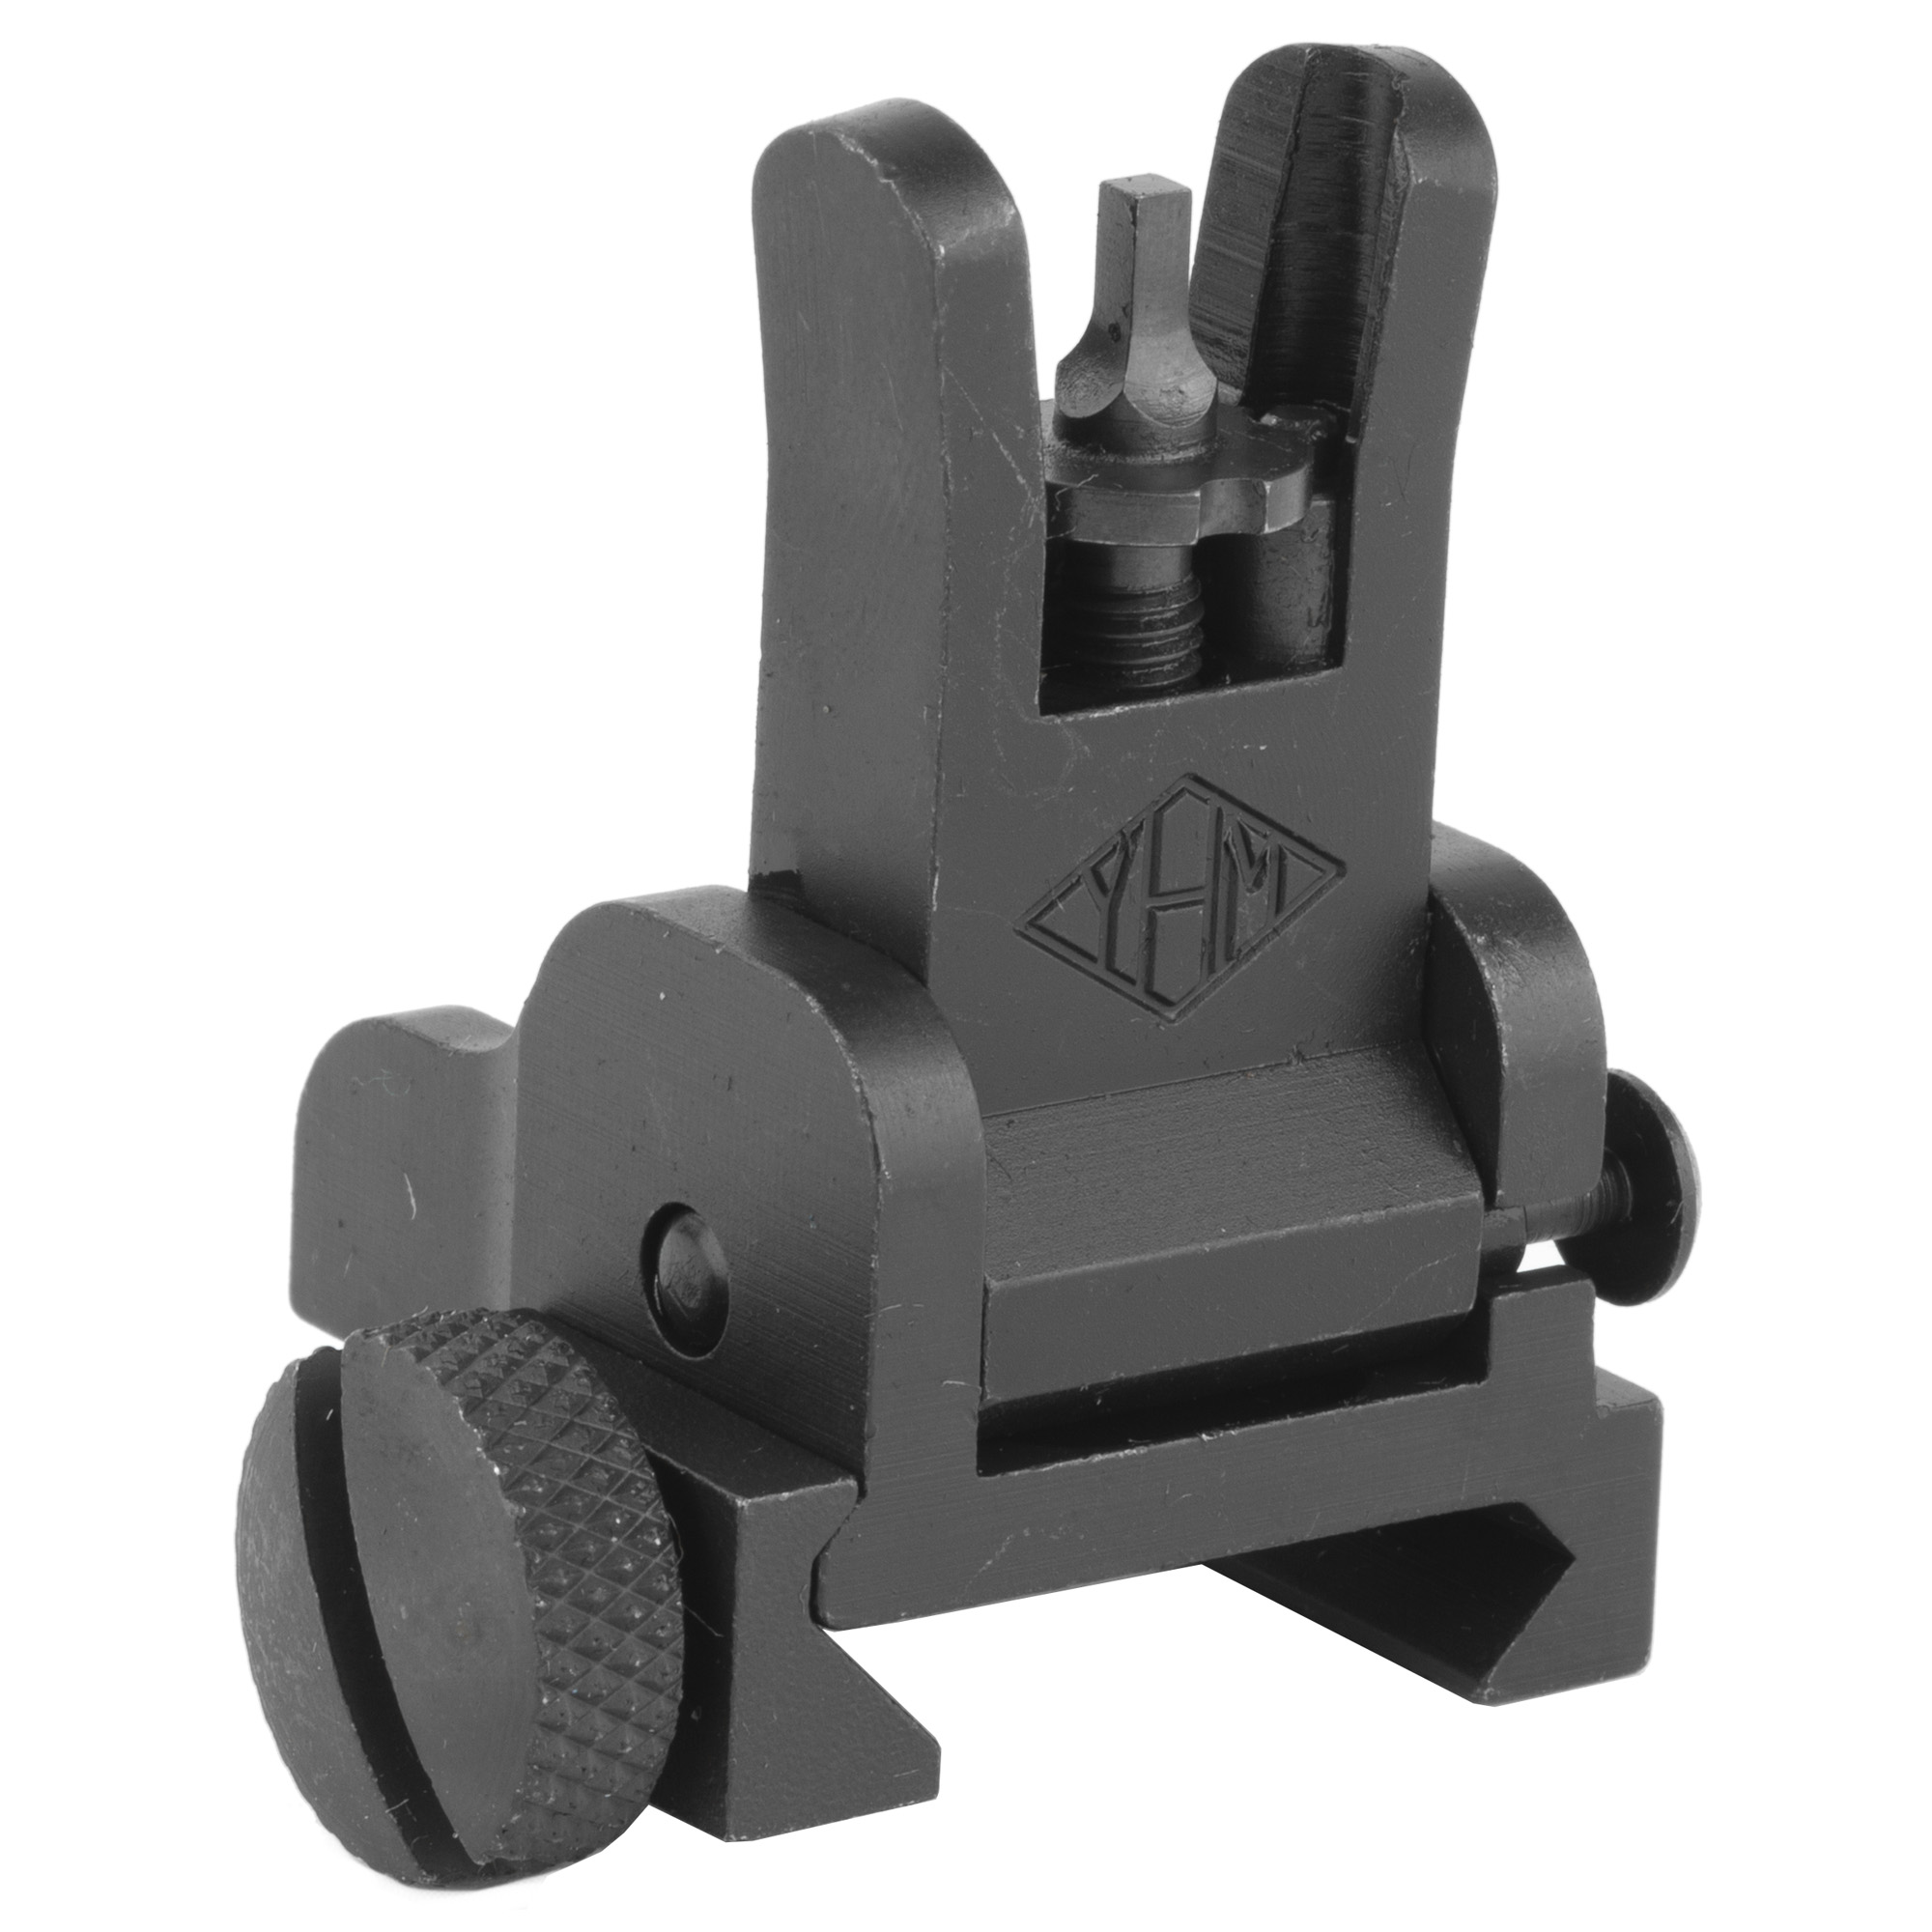 """AR-15 Same Plane Flip Front Sight- This durable"""" all steel sight mounts on the same plane as the rear sight to give you a backup iron sight. The sight folds out of the sight line with the push of a button and flips and locks in the deployed position with ease. Mounts quickly and easily with the included thumb screw. Accepts all standard AR sight posts and hardware (included)."""